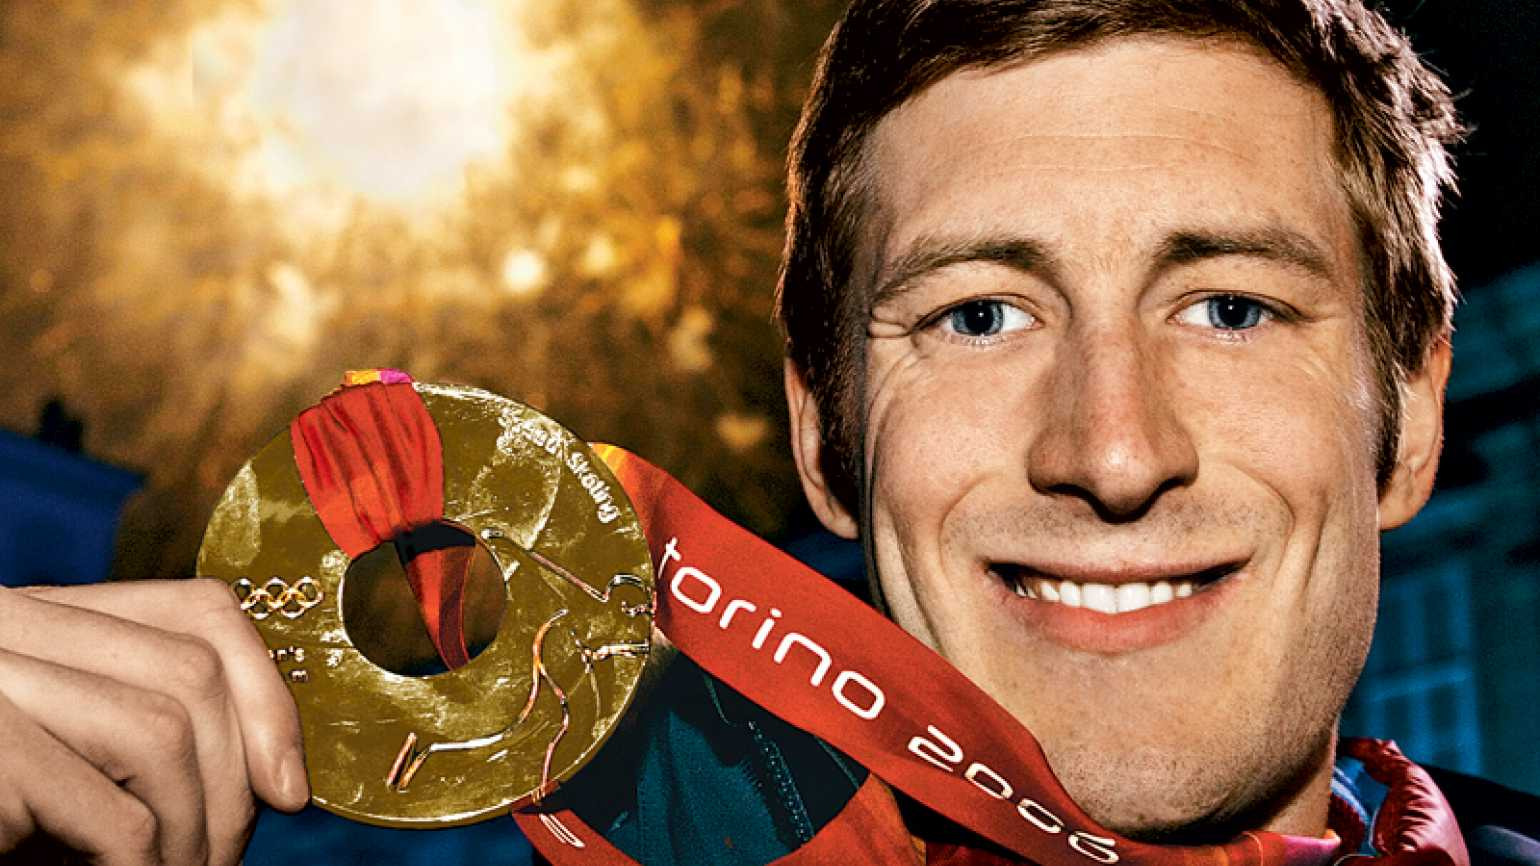 Joey Cheek poses with his gold medal in Torino.